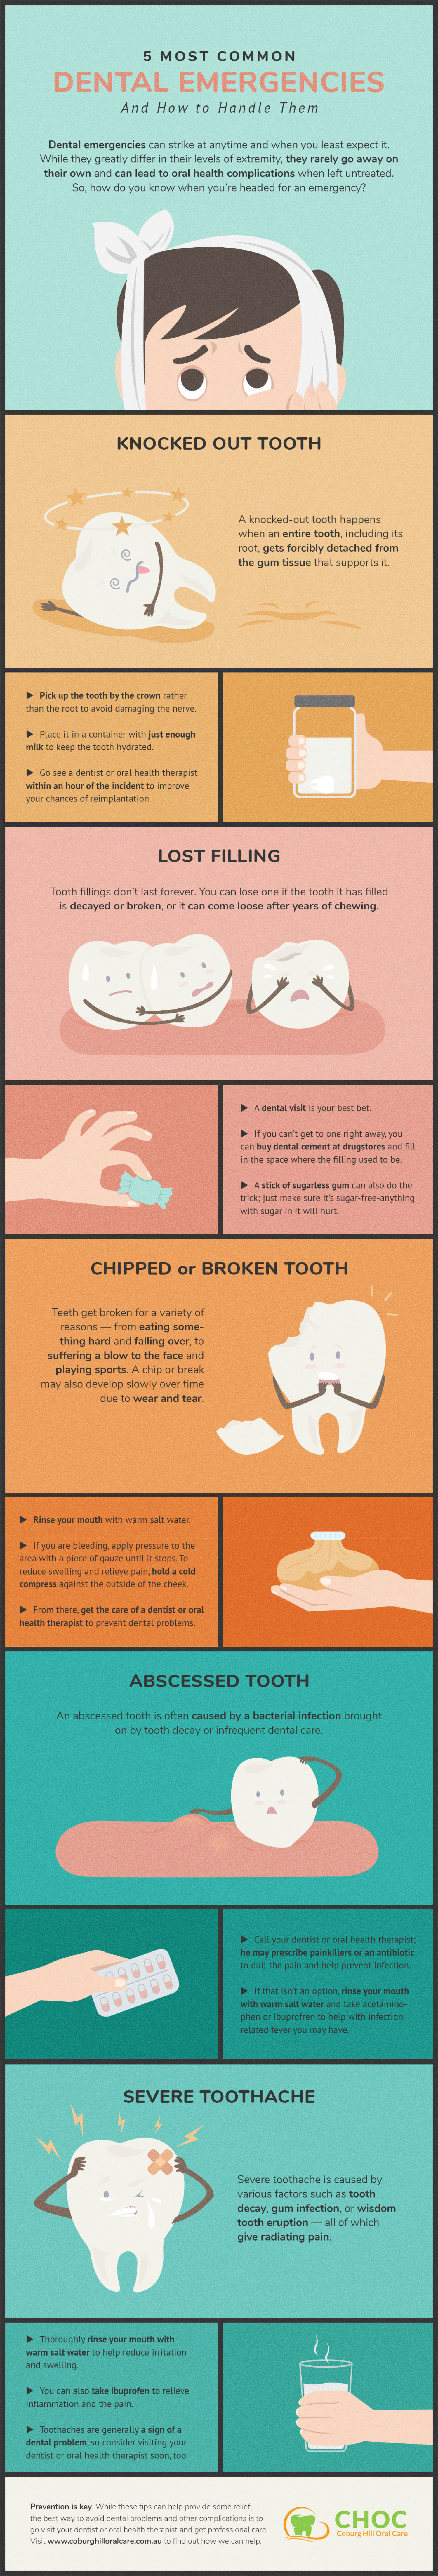 Quick Tips for Handling Common Dental Emergencies Infographic